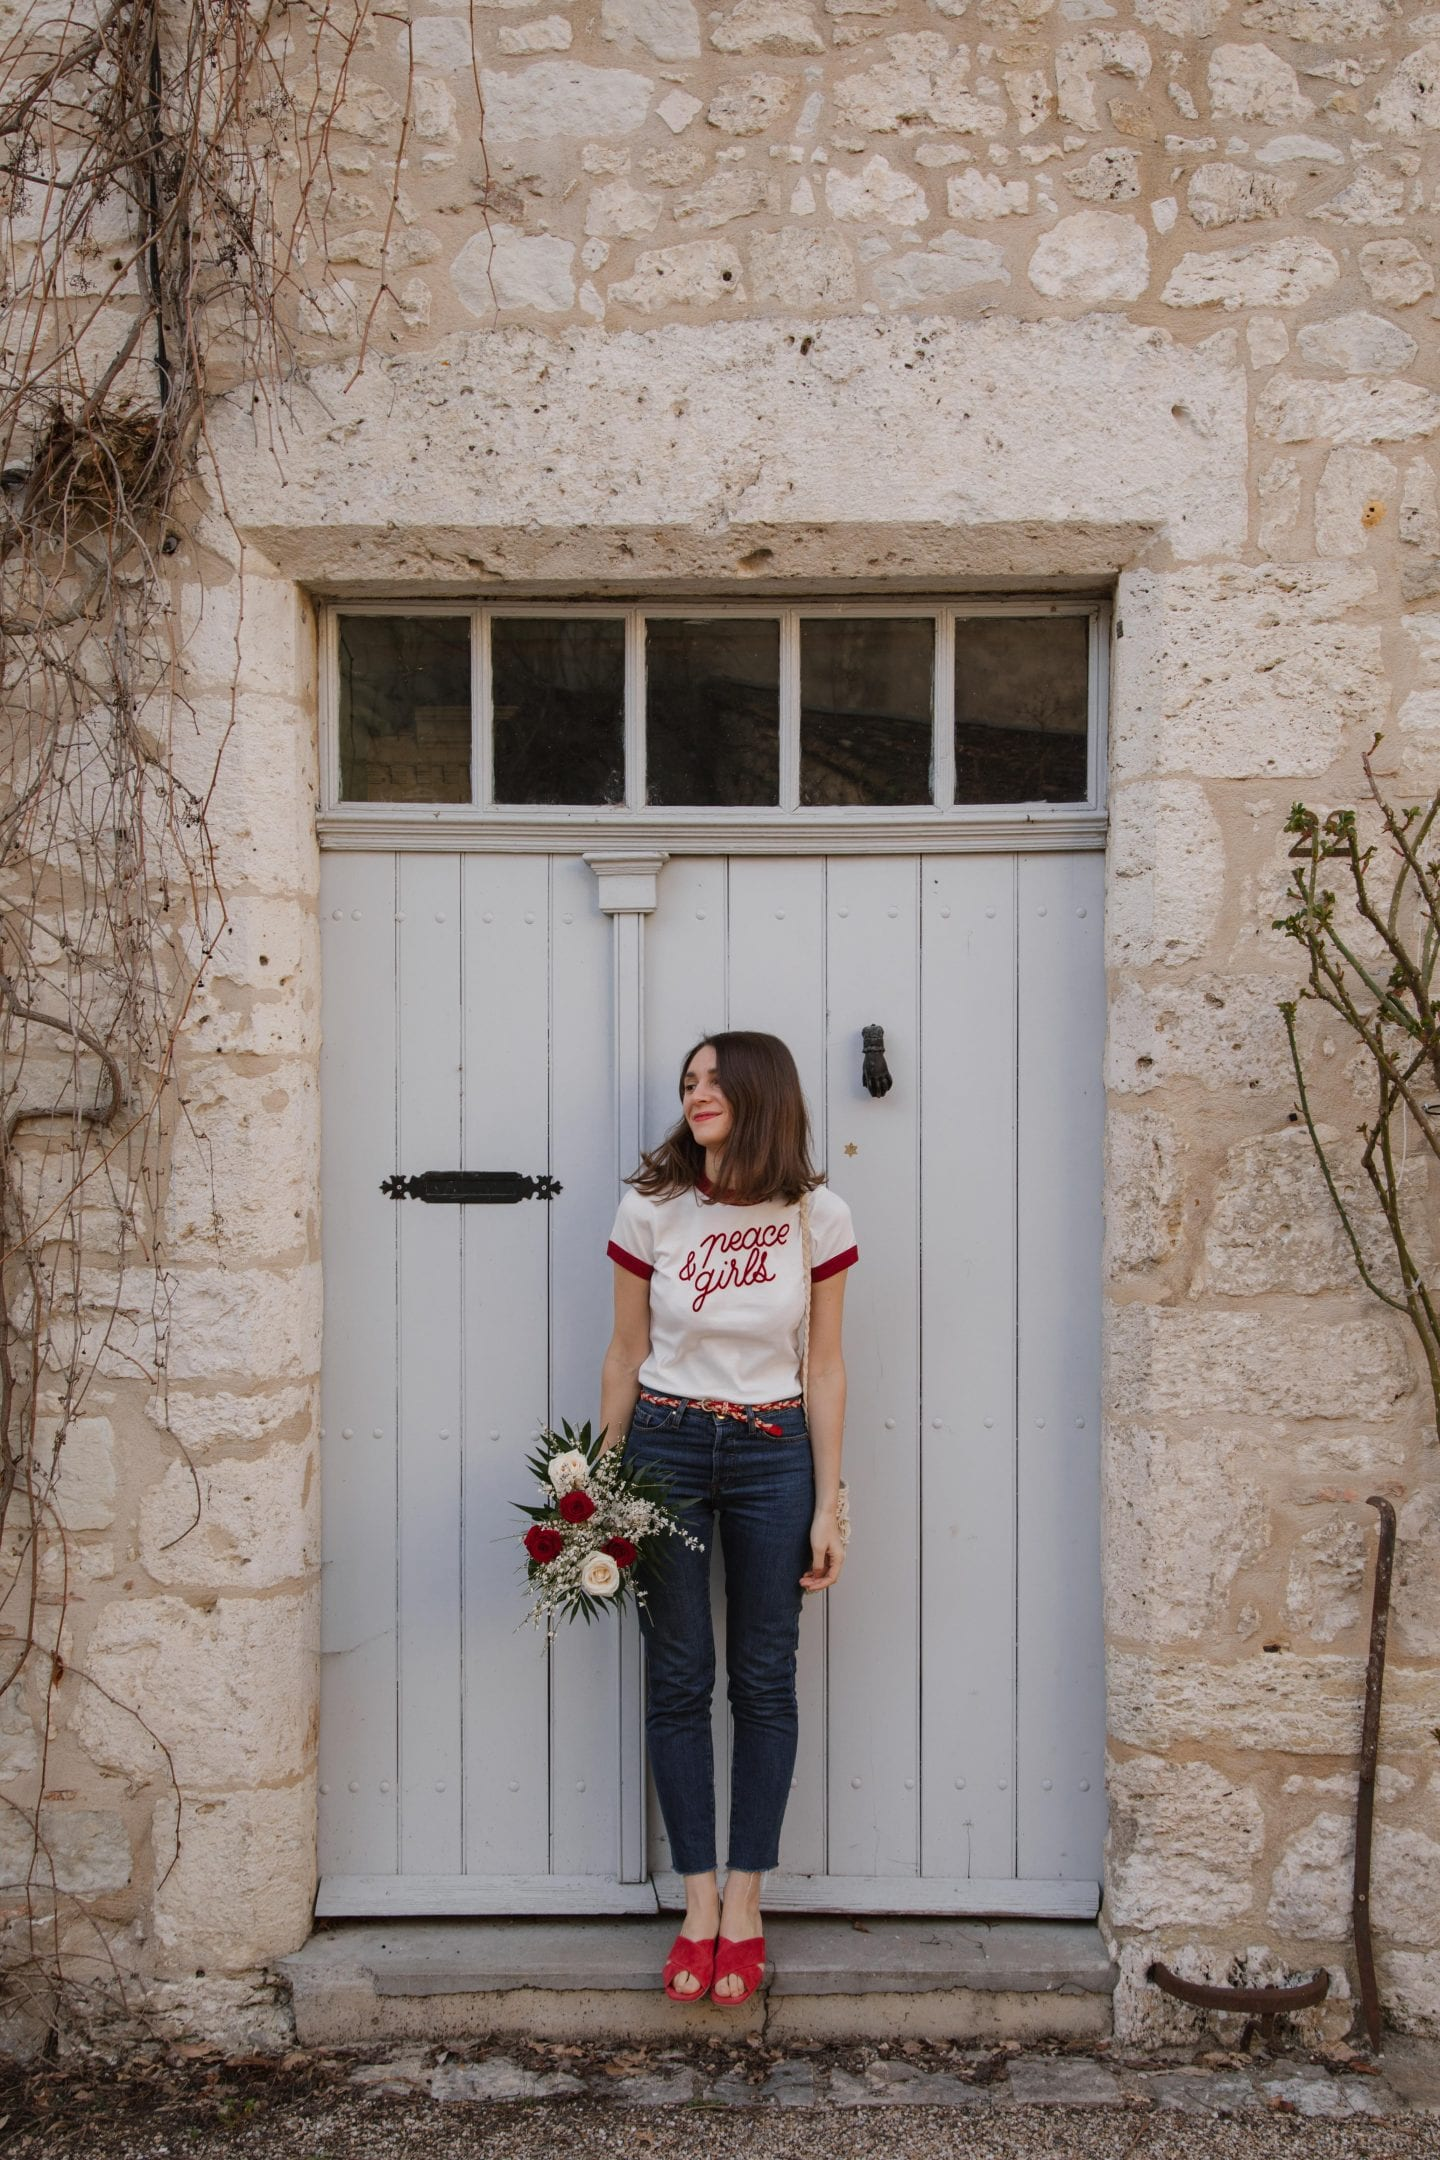 Porter le t-shirt à message : conseils et astuce mode / T-shirt Eva Peace & Girls par Make My Lemonade-Lisa Gachet / Blog some place called home